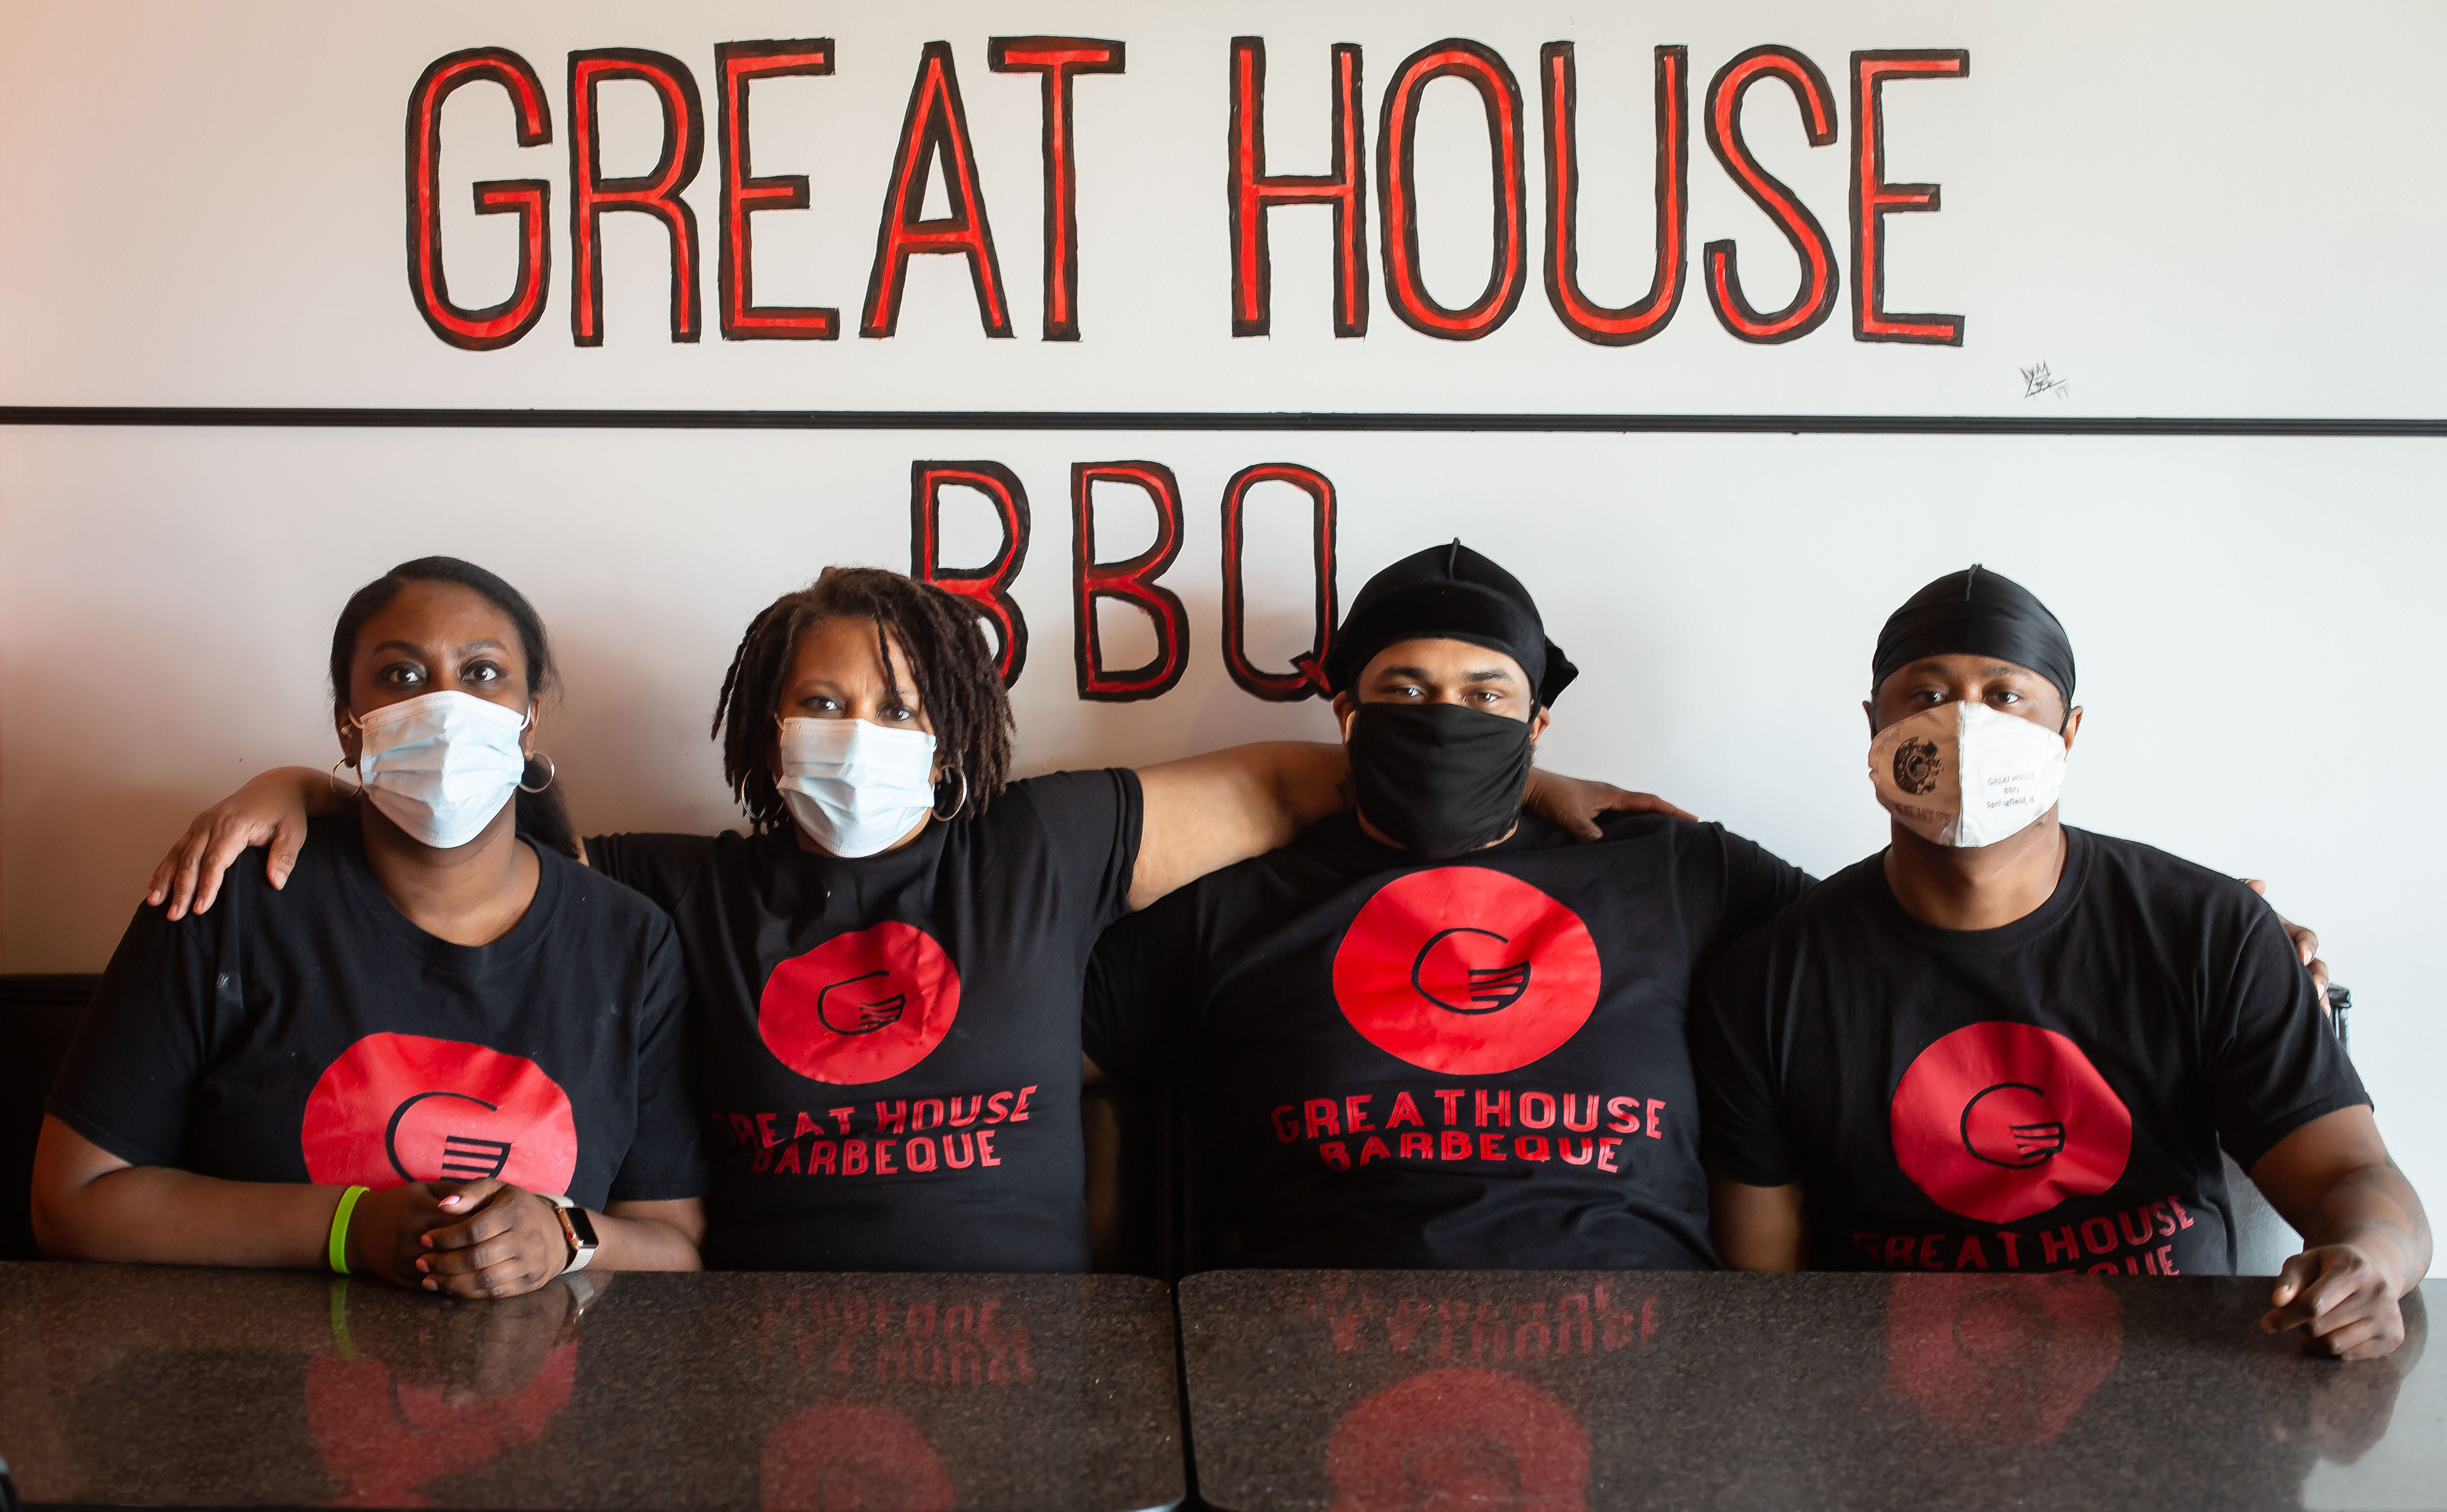 It's a family affair for Great House BBQ with Di'Anna Mitchell, left, mother, Renatta Dunigan, and brothers Benjamin Frazier and Kurtis Mitchell, right, that are partners in the BBQ restaurant at 4233 Wabash Ave. The restaurant faced tough times through the COVID-19 pandemic, but found help through the generosity of donations from a GoFundMe campaign that was started by a friend of Renatta Dunigan. [Justin L. Fowler/The State Journal-Register]